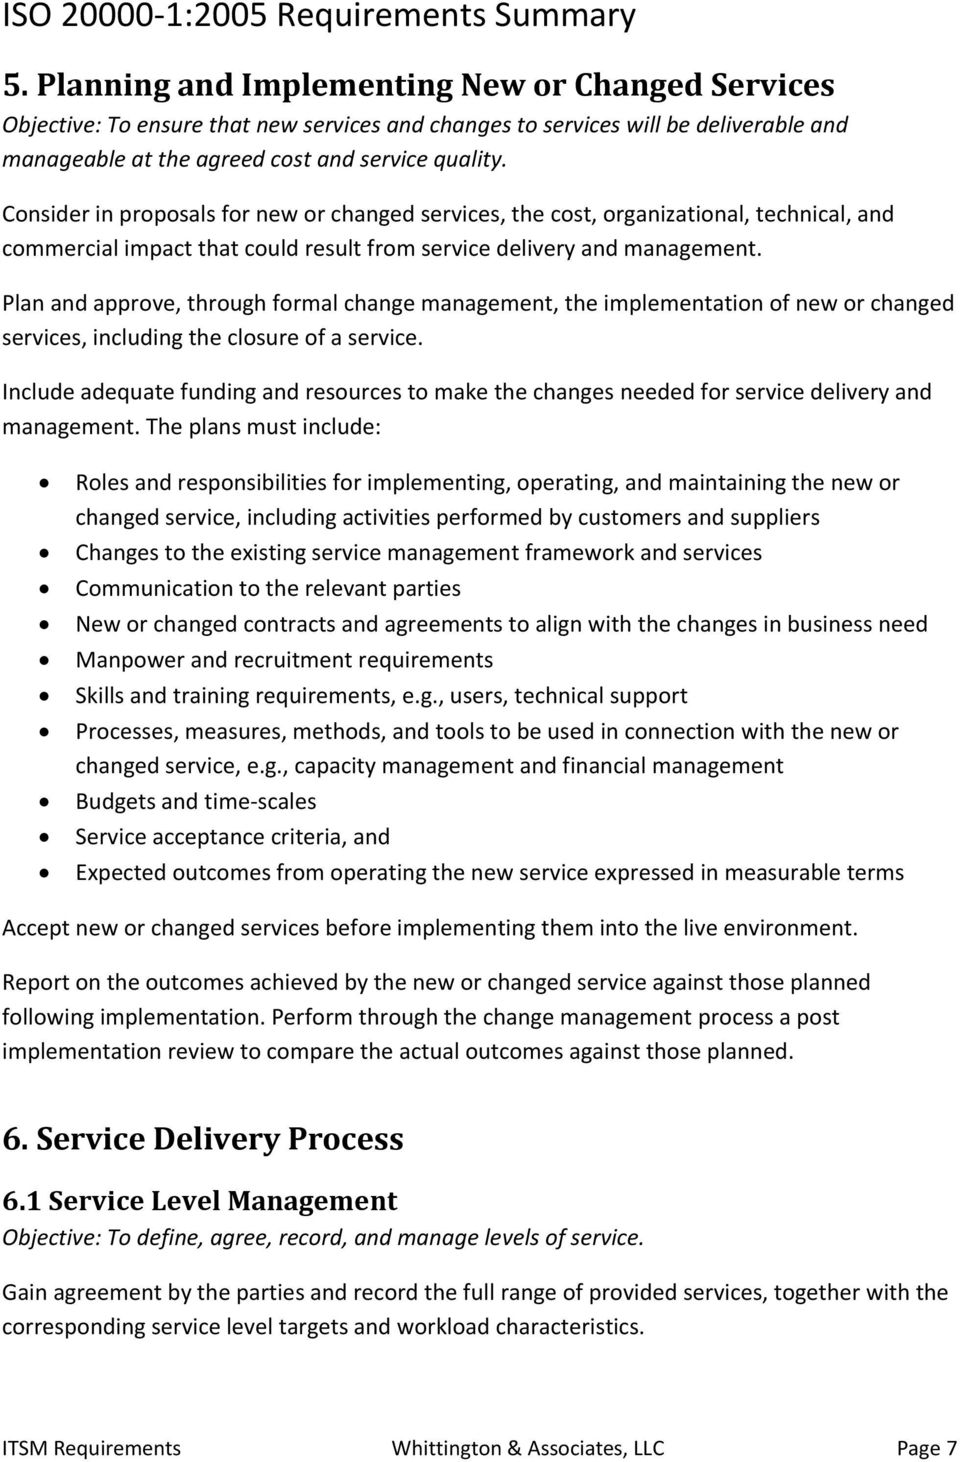 Plan and approve, through formal change management, the implementation of new or changed services, including the closure of a service.